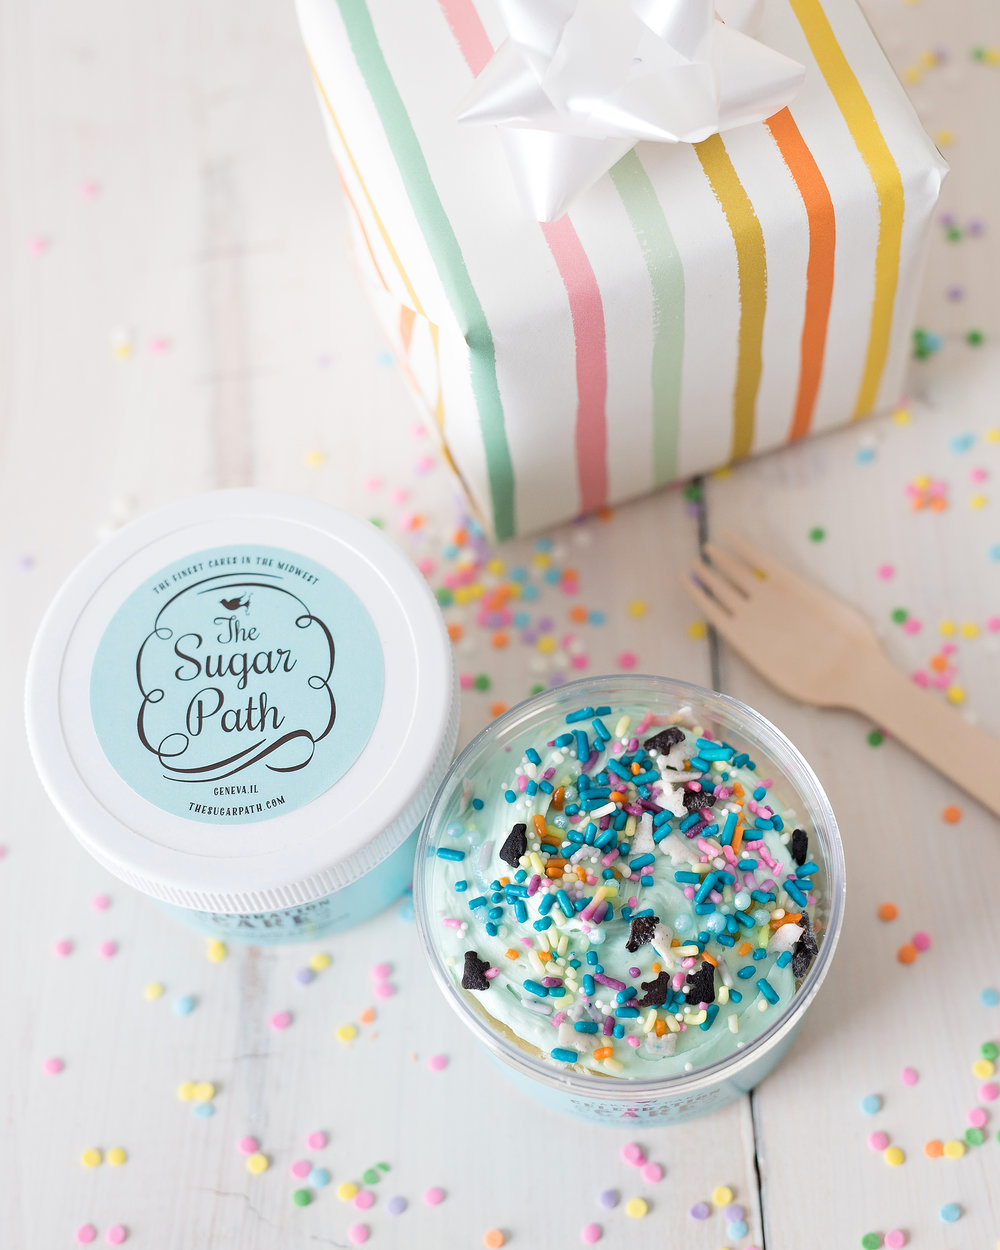 Cake Jars are portable and ready to eat. Layers of cake, frosting and toppings. All in a jar!